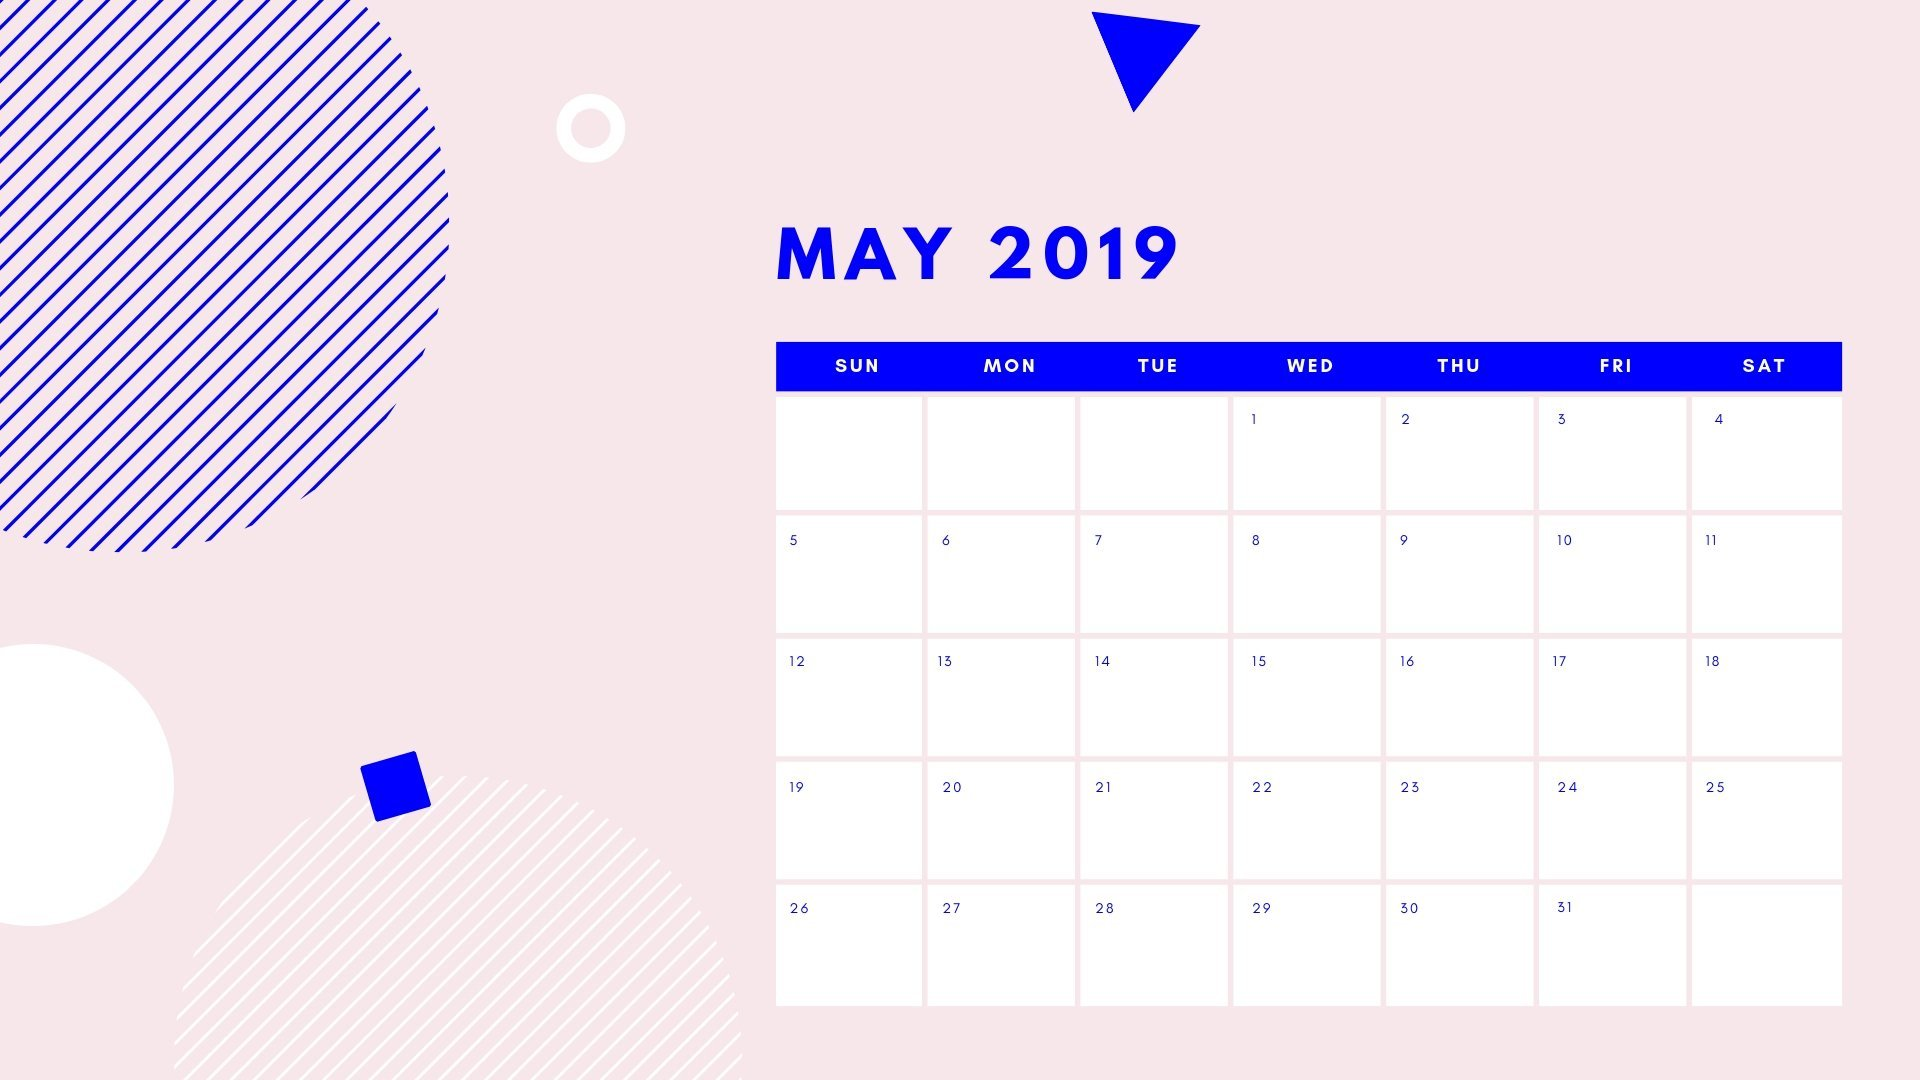 May 2019 Calendar Desktop Wallpaper   Printable Calendar 1920x1080